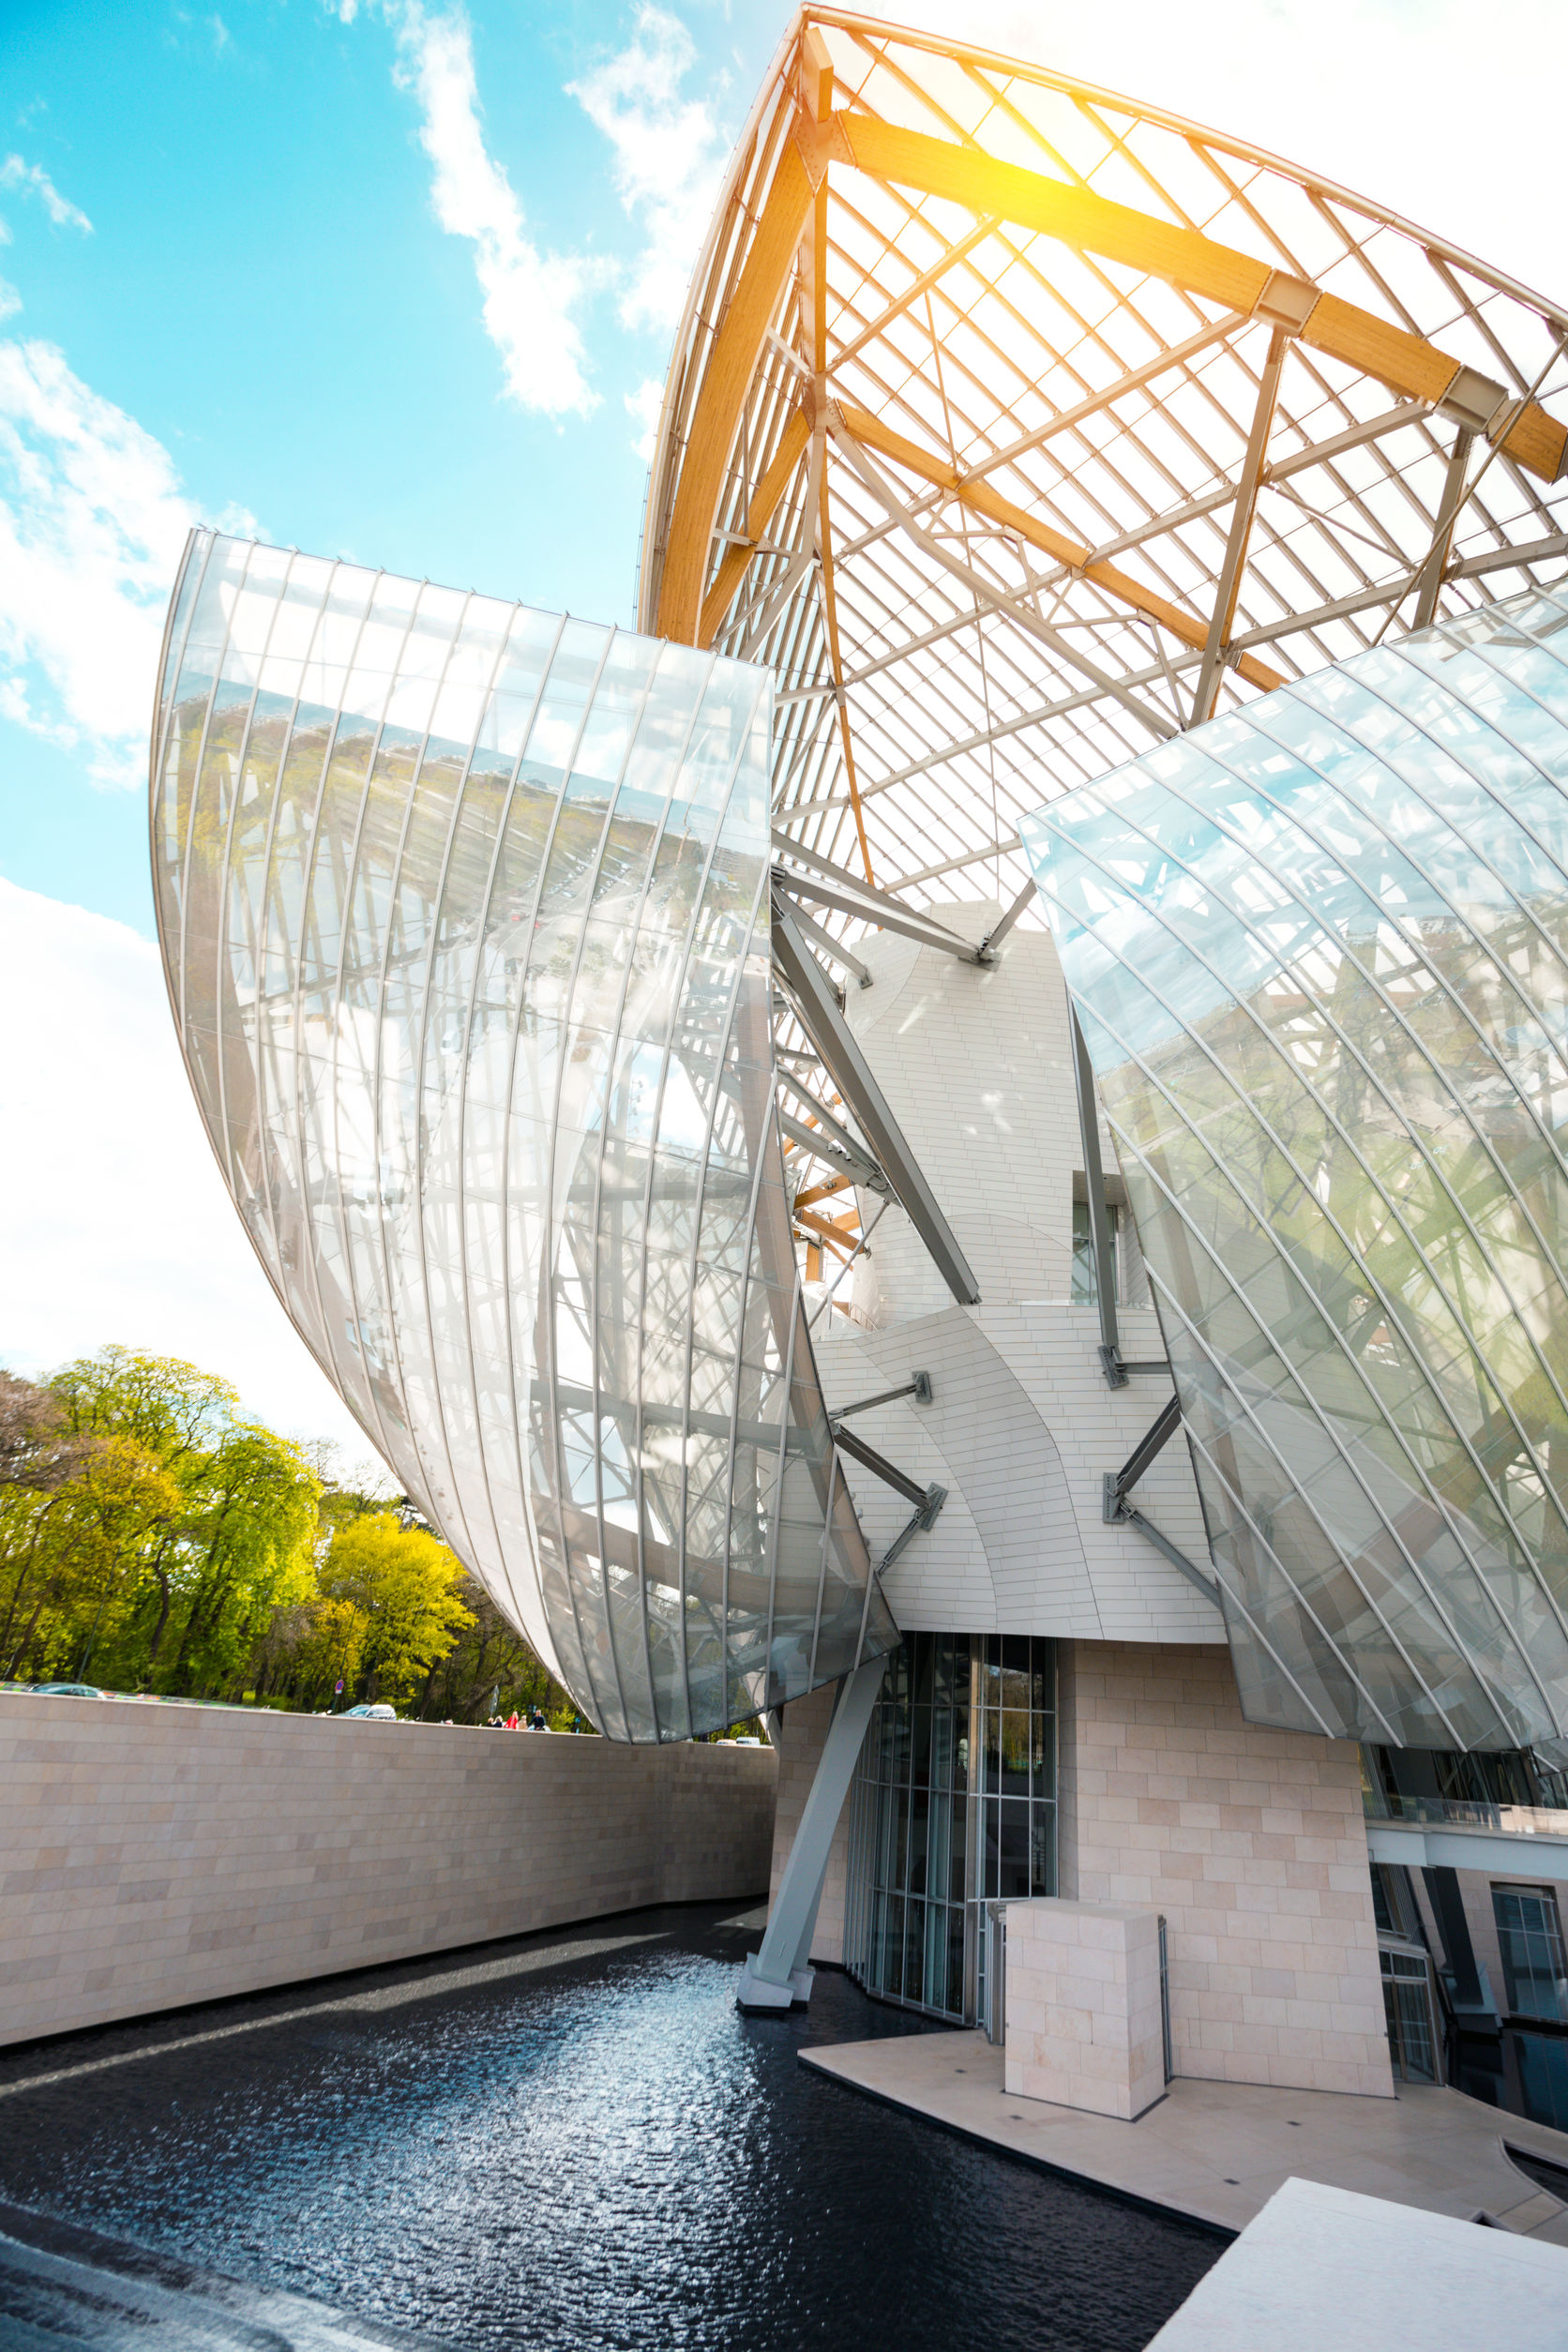 Fondation Louis Vuitton - Rocherons Doré 4.8.2020 - 1